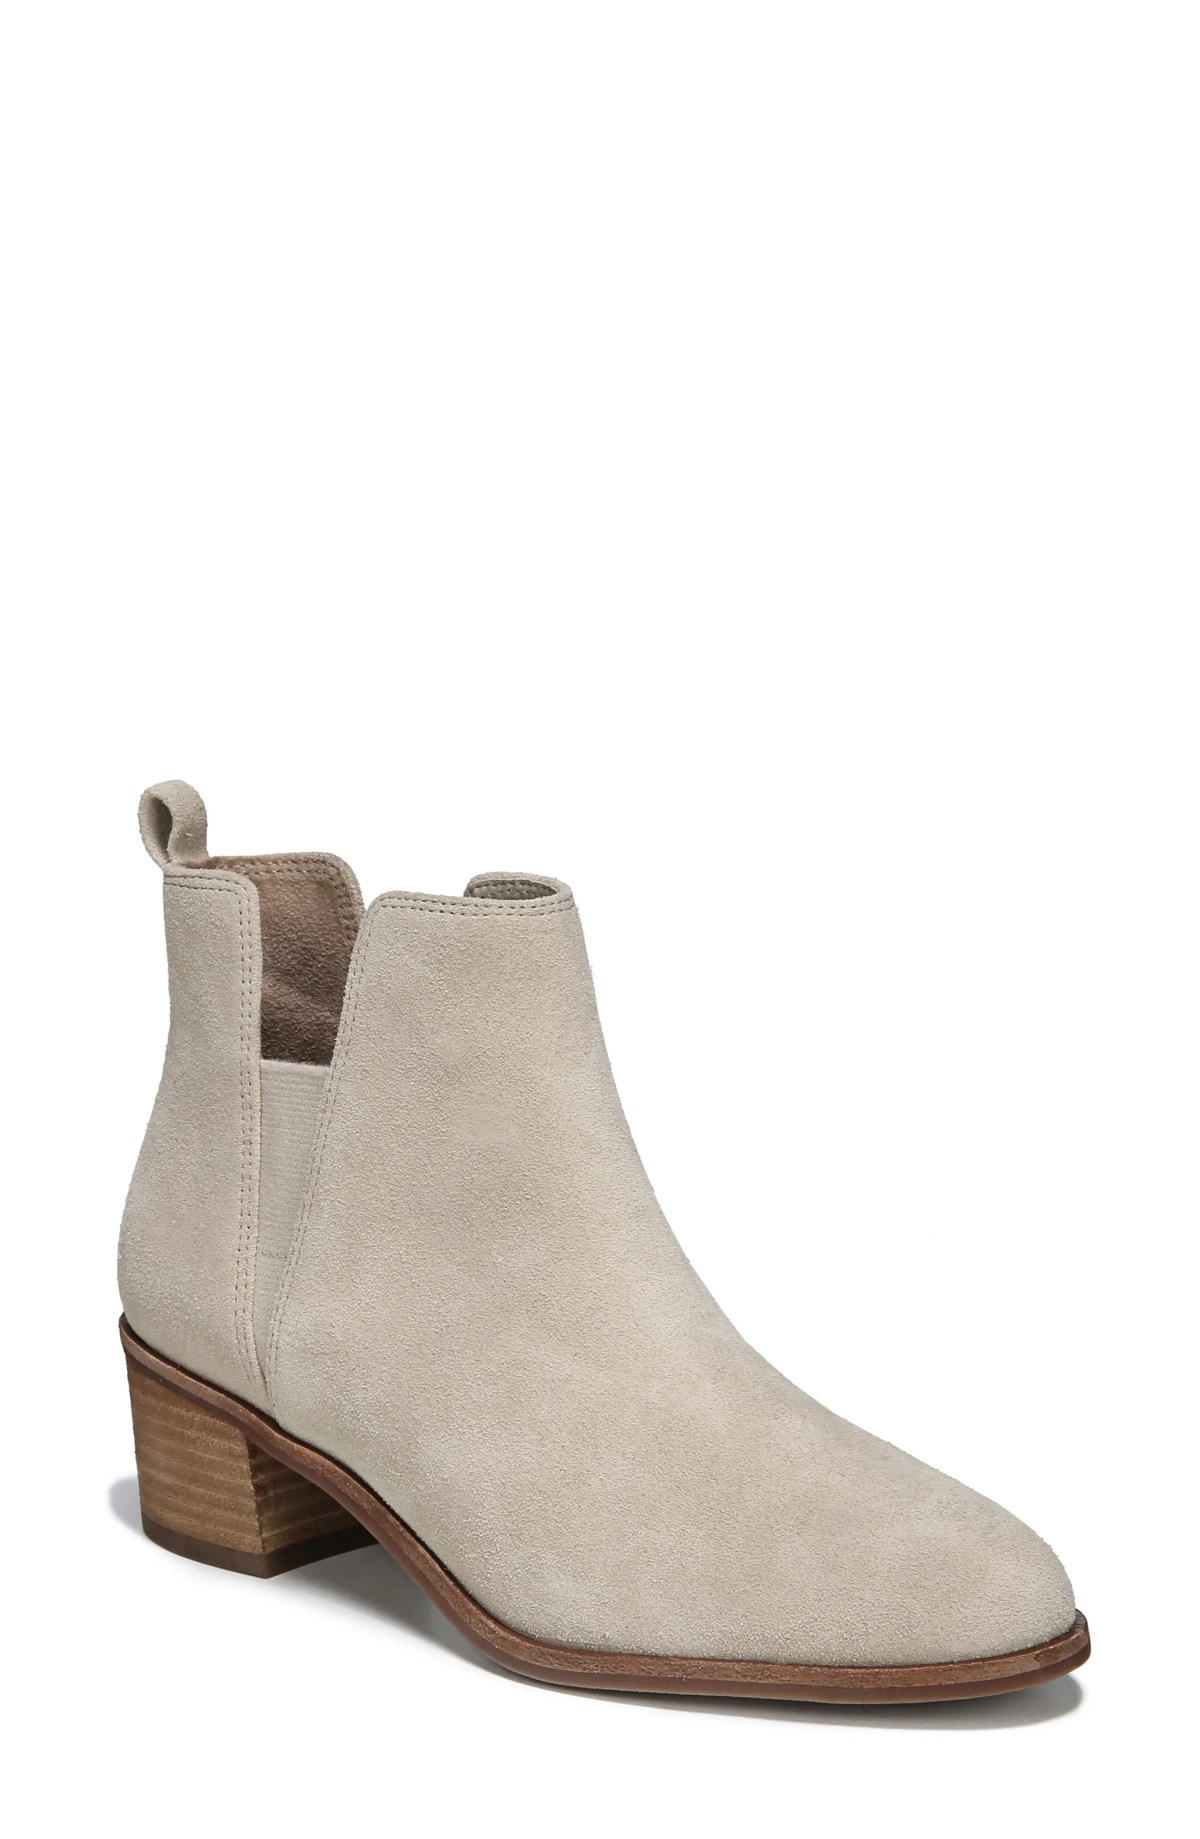 DR. SCHOLL'S Amara Bootie, Main, color, NUDE LEATHER